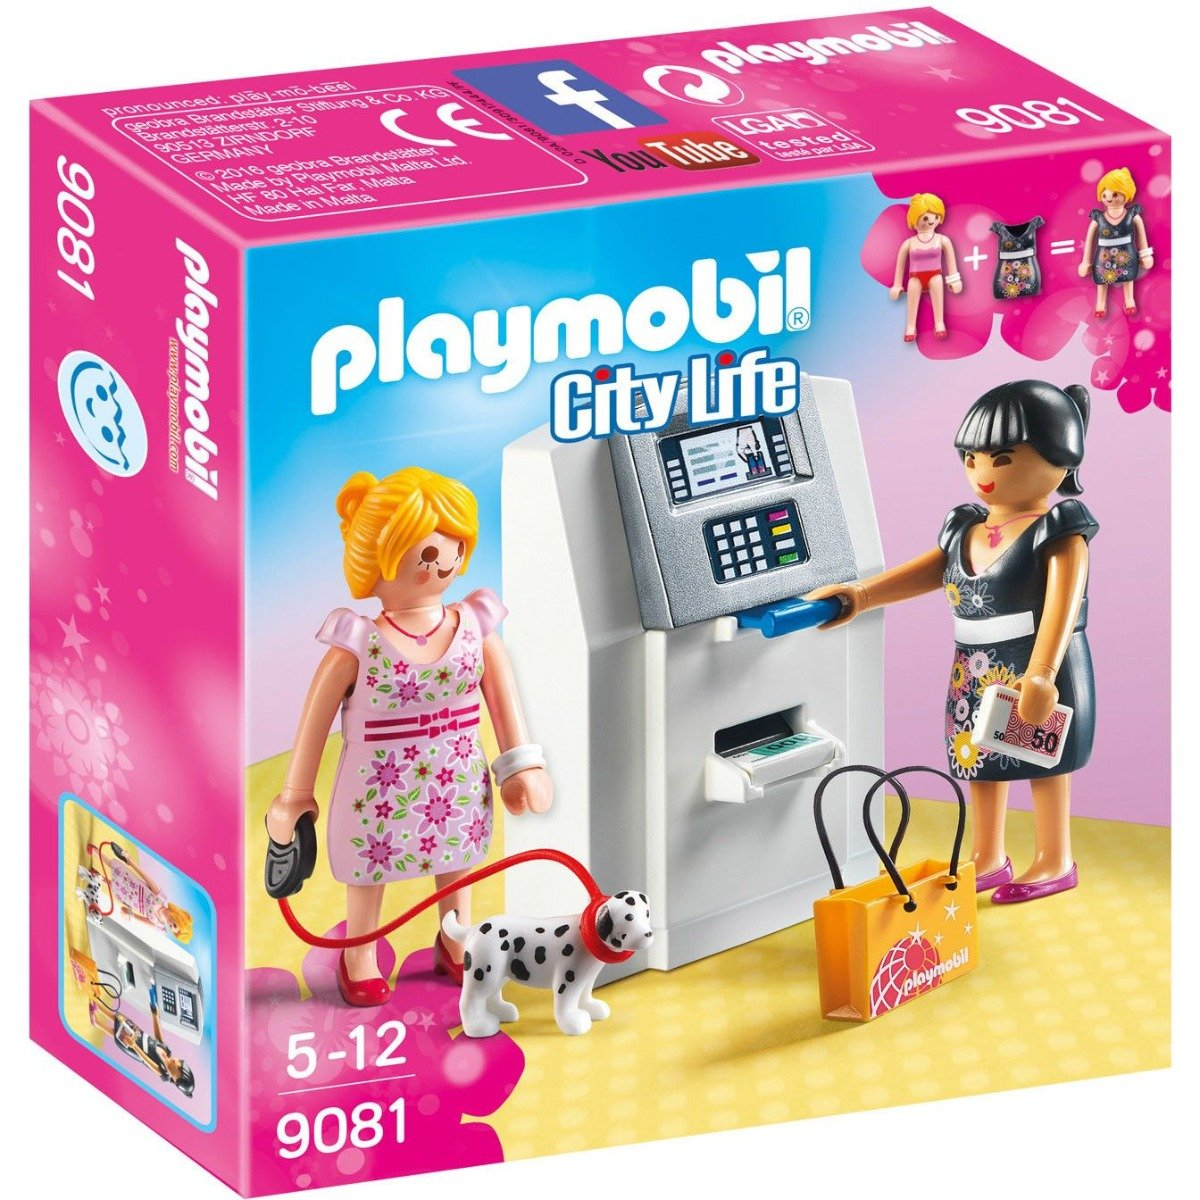 Set Playmobil City Life - Bancomat (9081)